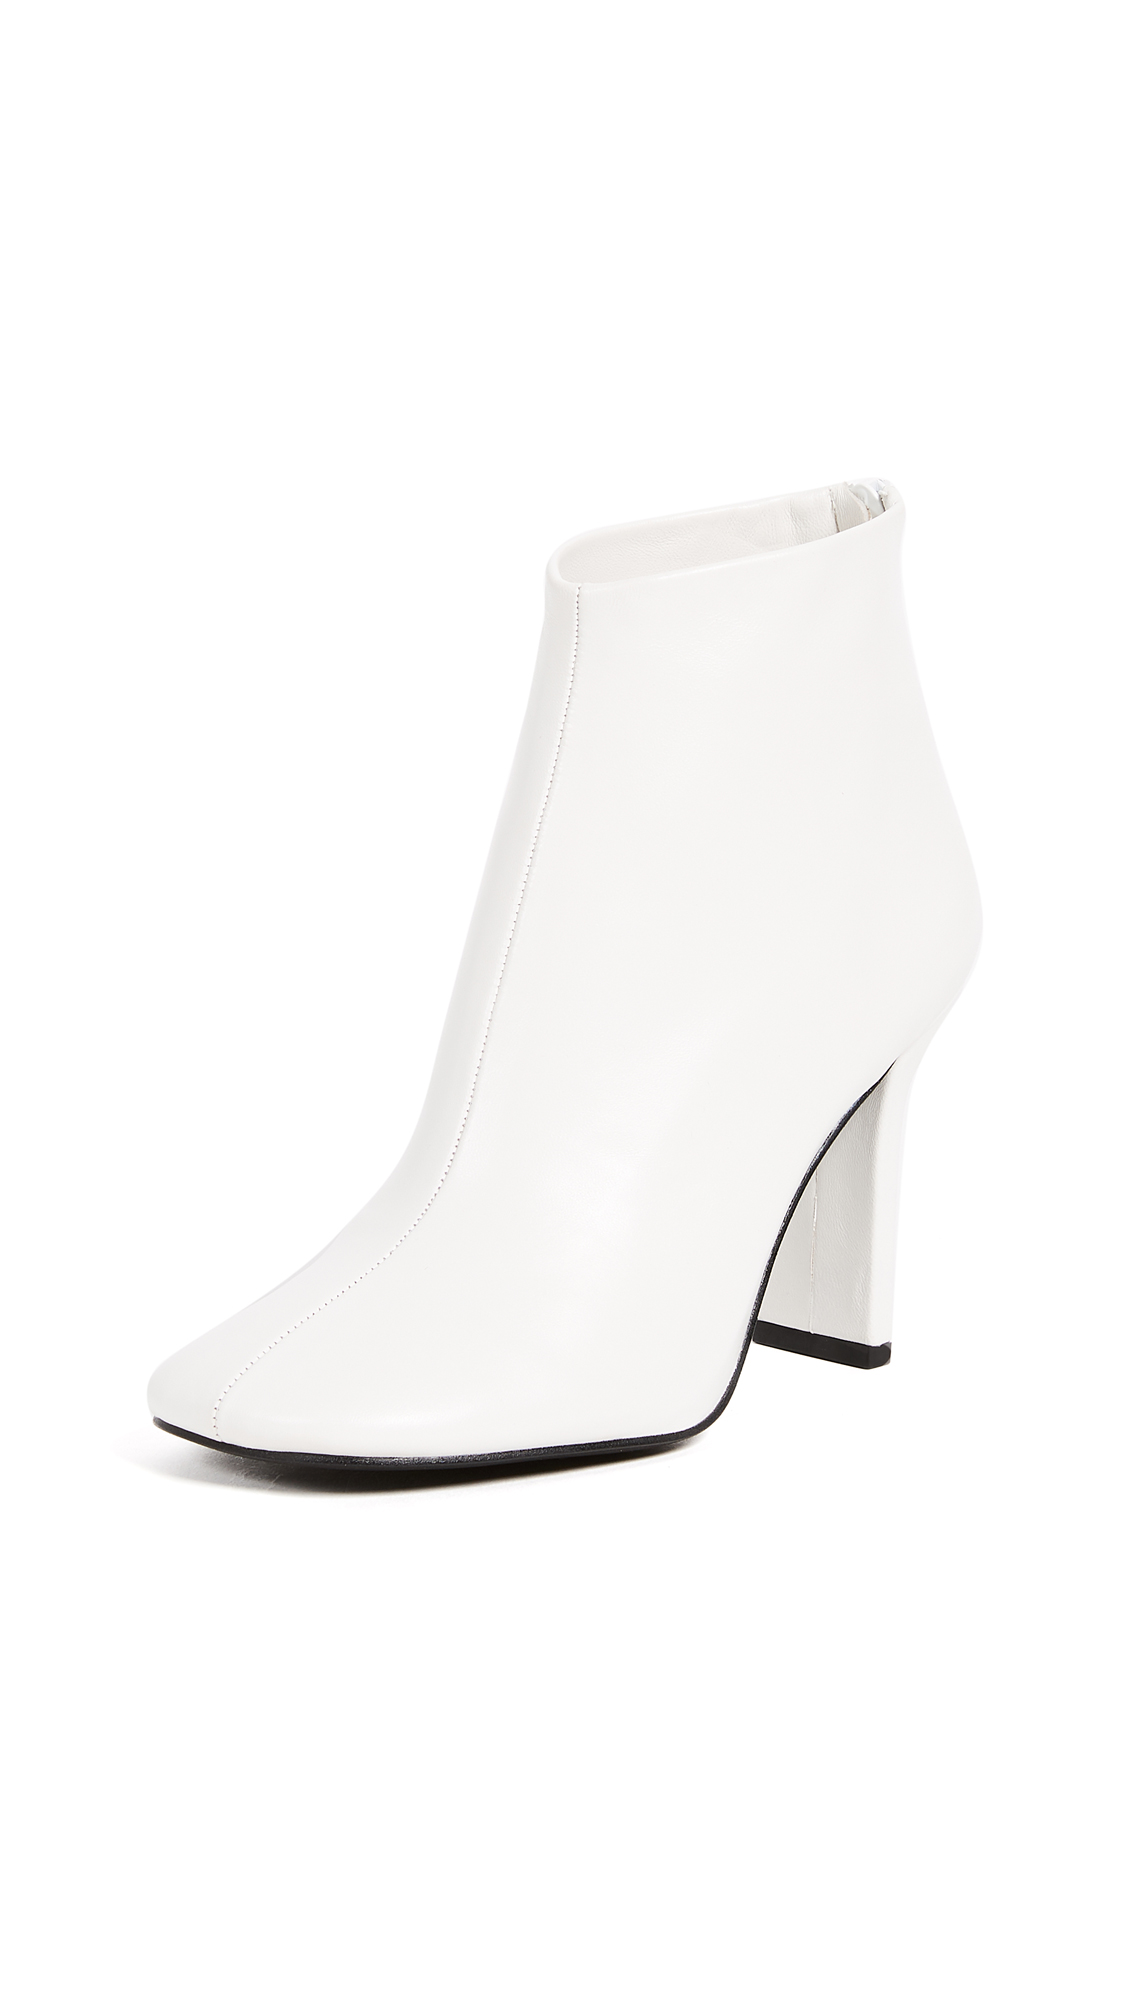 Jeffrey Campbell Obey Ankle Booties - White